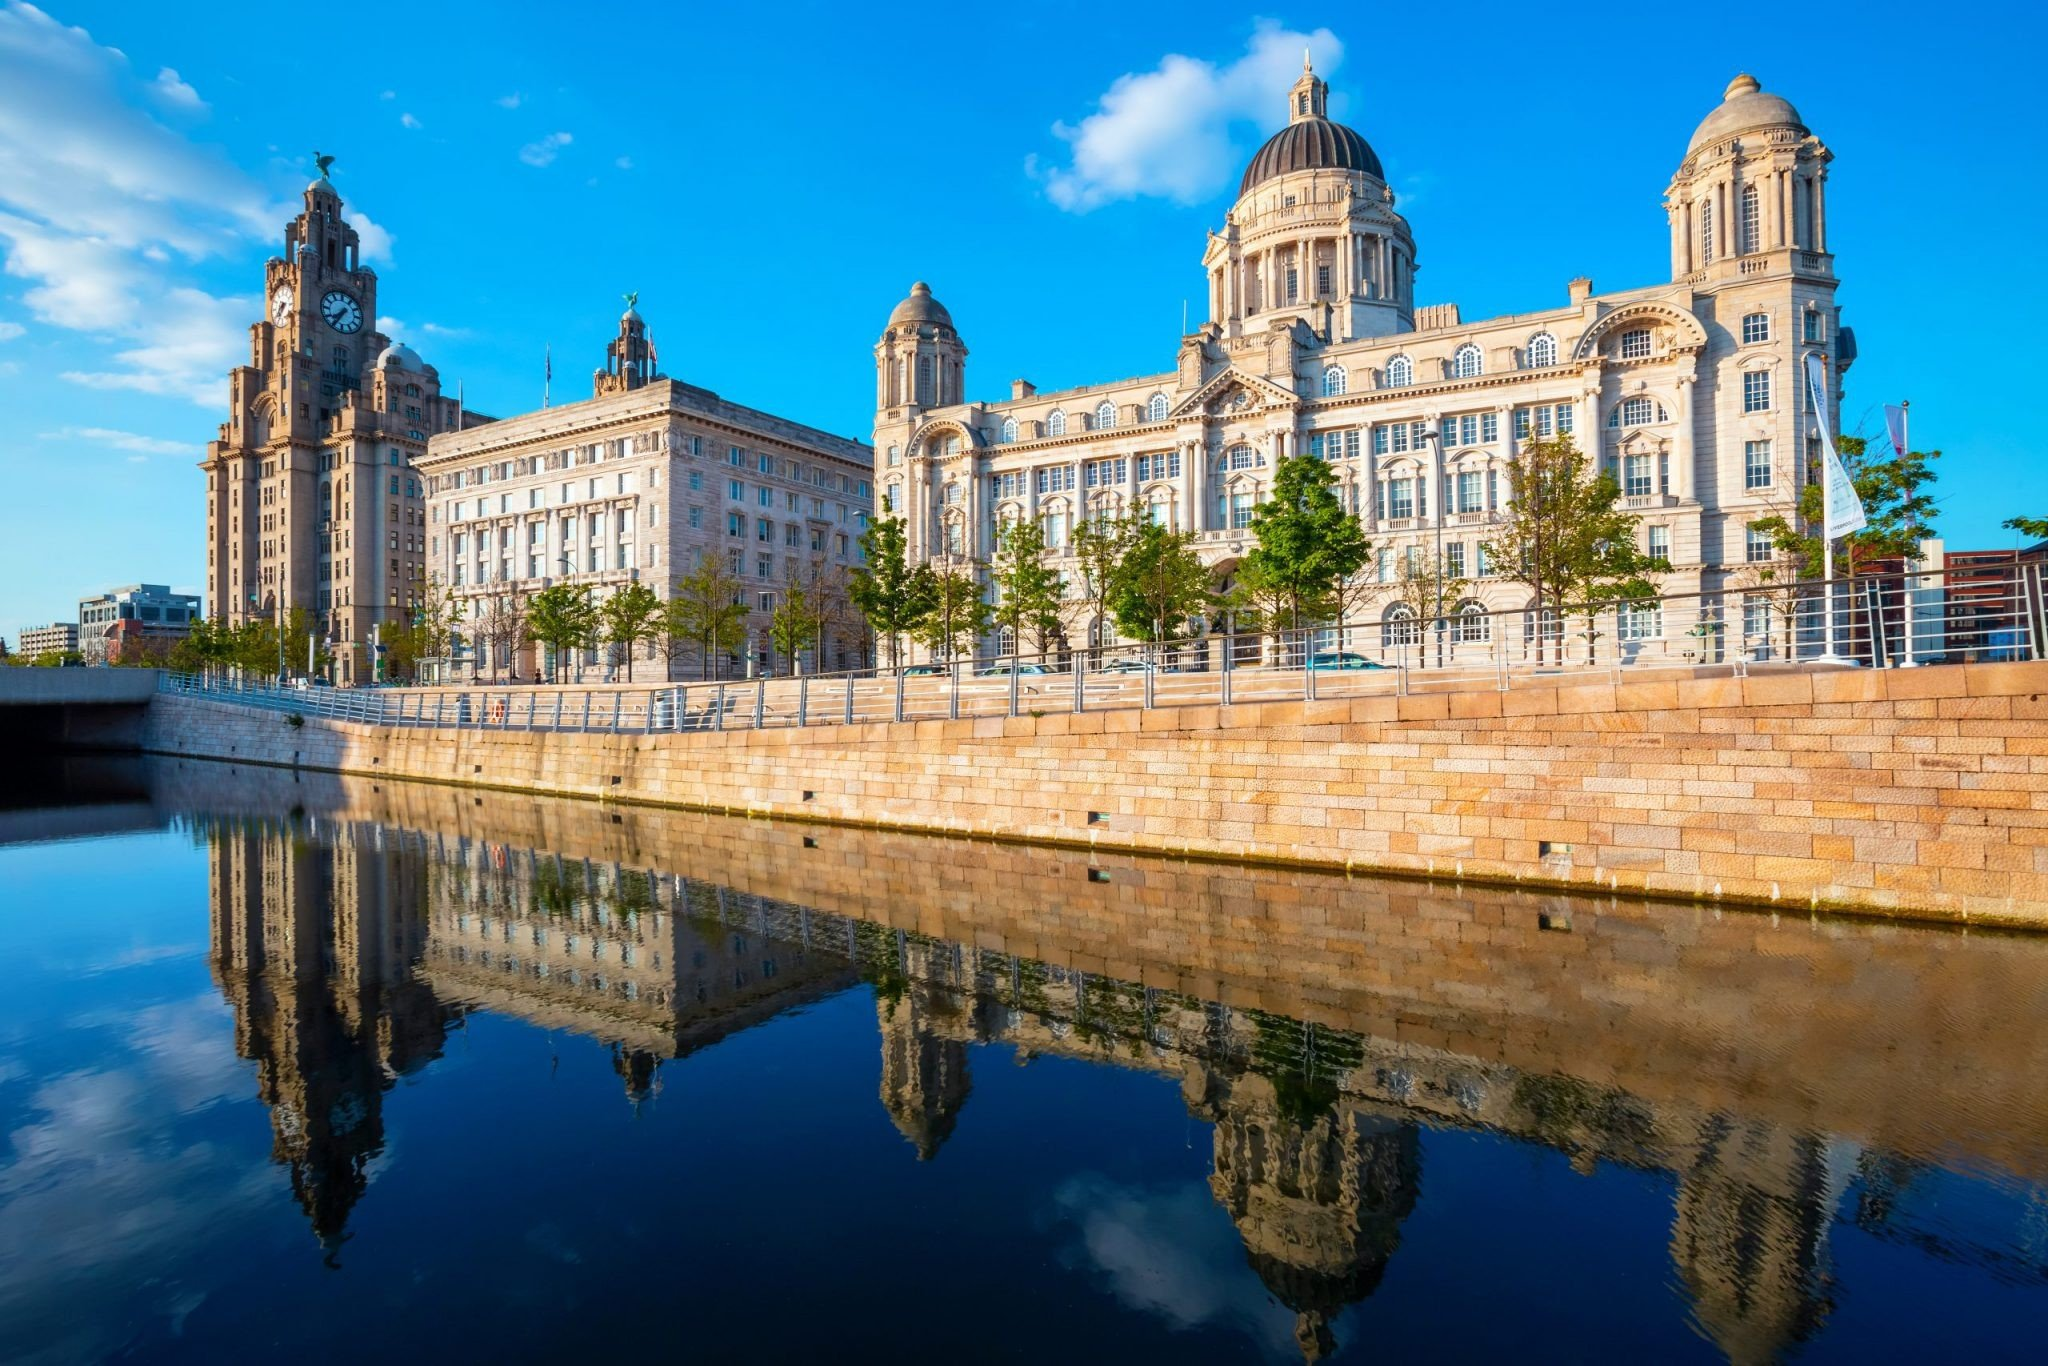 Liverpool, UK: Liverpool Pier Head with the Royal Liver Building, Cunard Building and Port of Liverpool Building part of the Liverpool Maritime Mercantile City UNESCO World Heritage Site